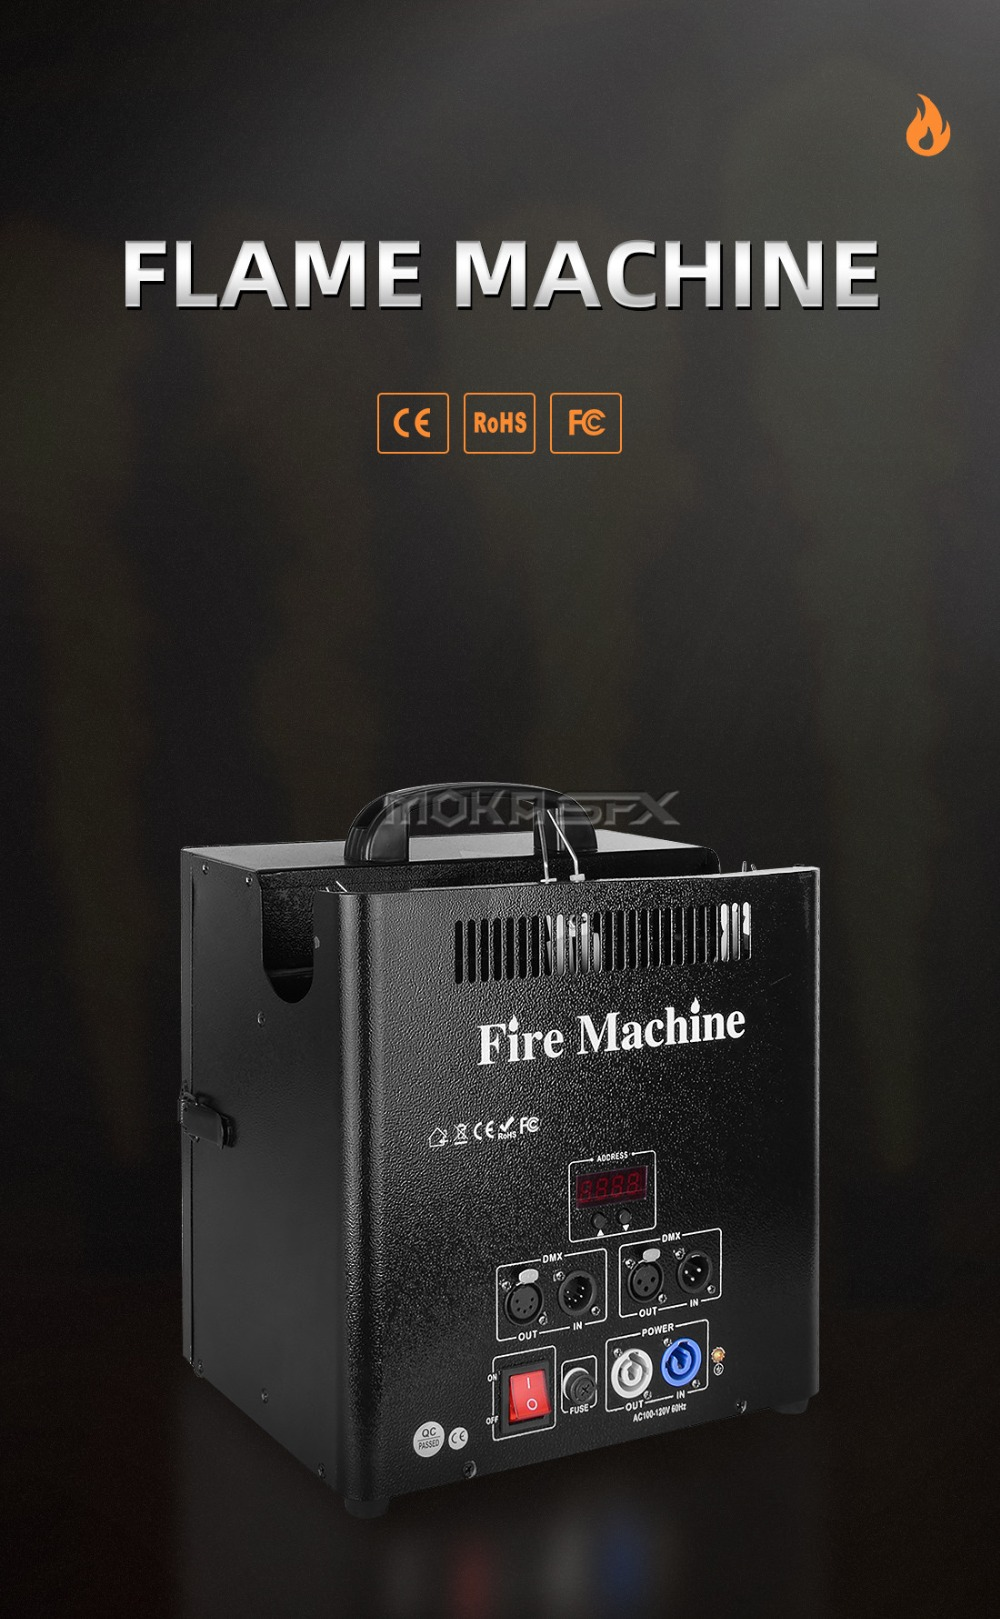 flame machine